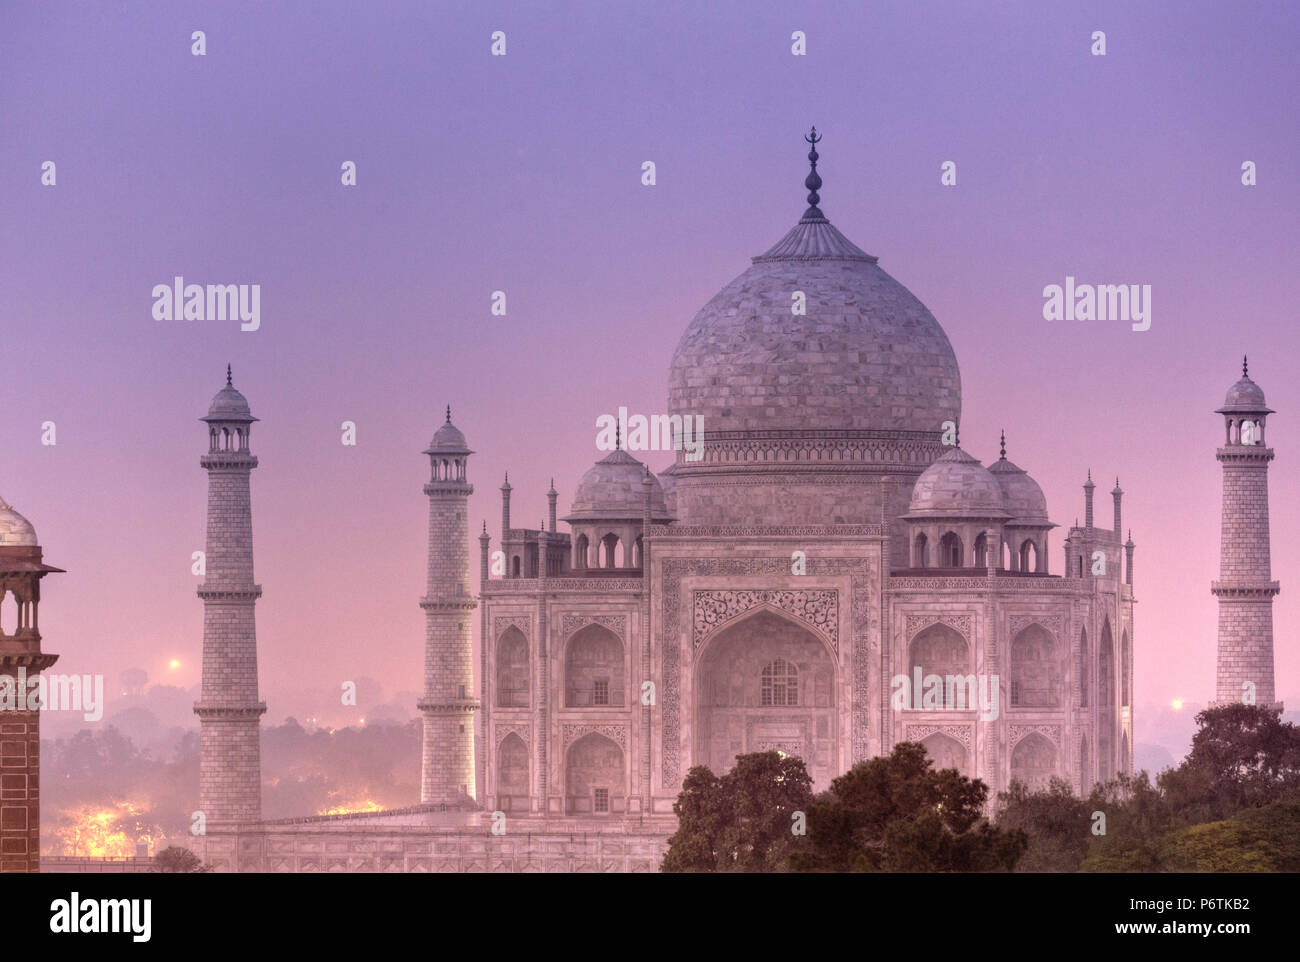 India, Uttar Pradesh, Agra, Taj Mahal (UNESCO site), on a full moon night - Stock Image